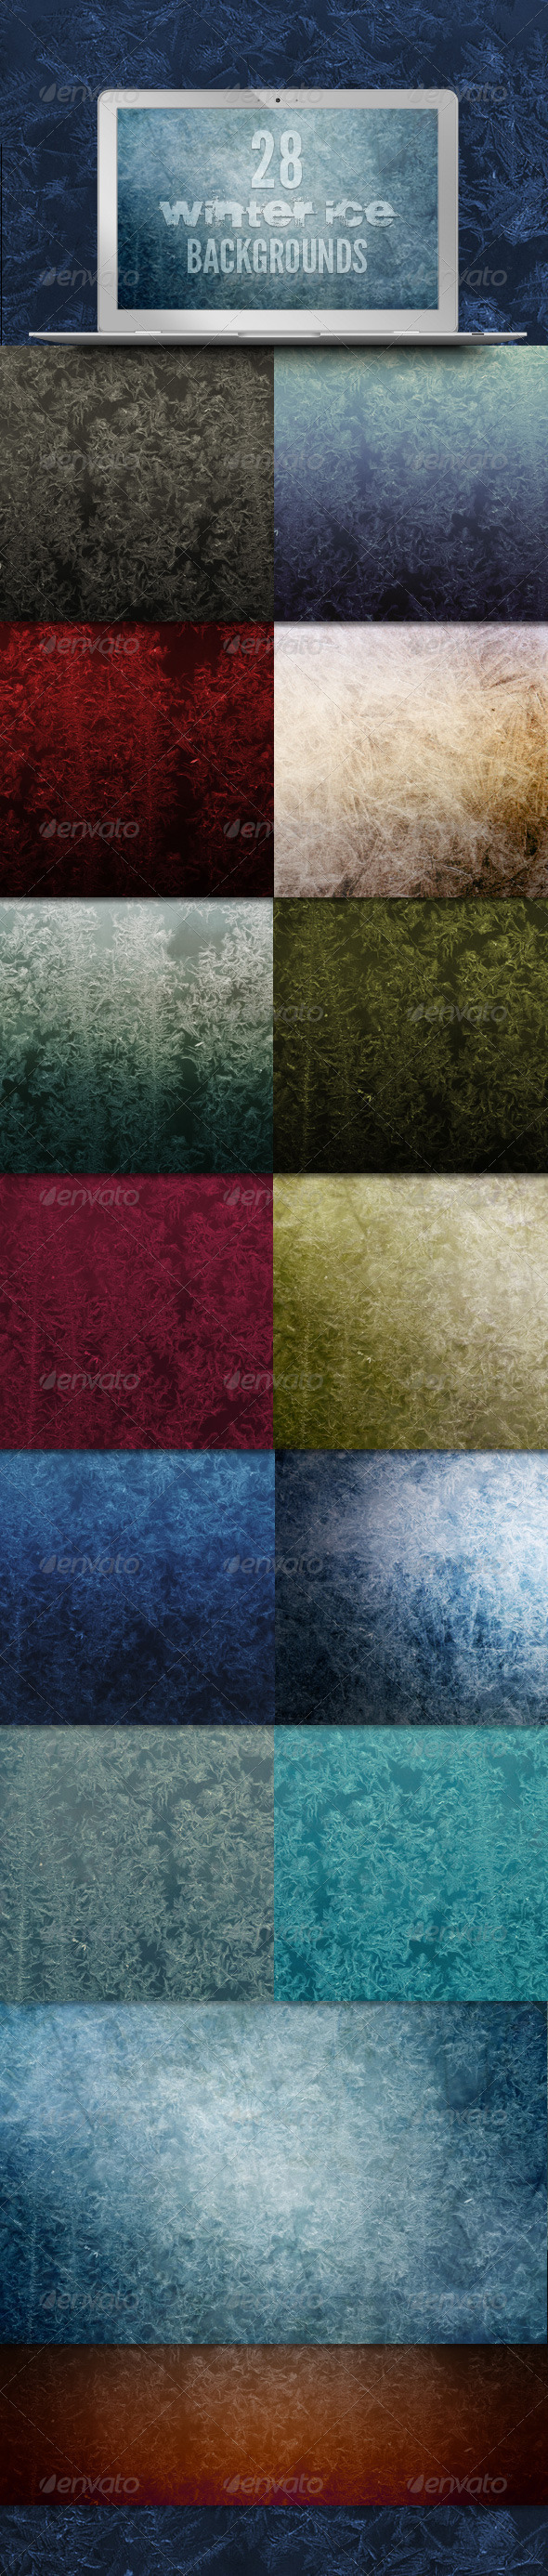 28 Winter Ice Backgrounds - Abstract Backgrounds